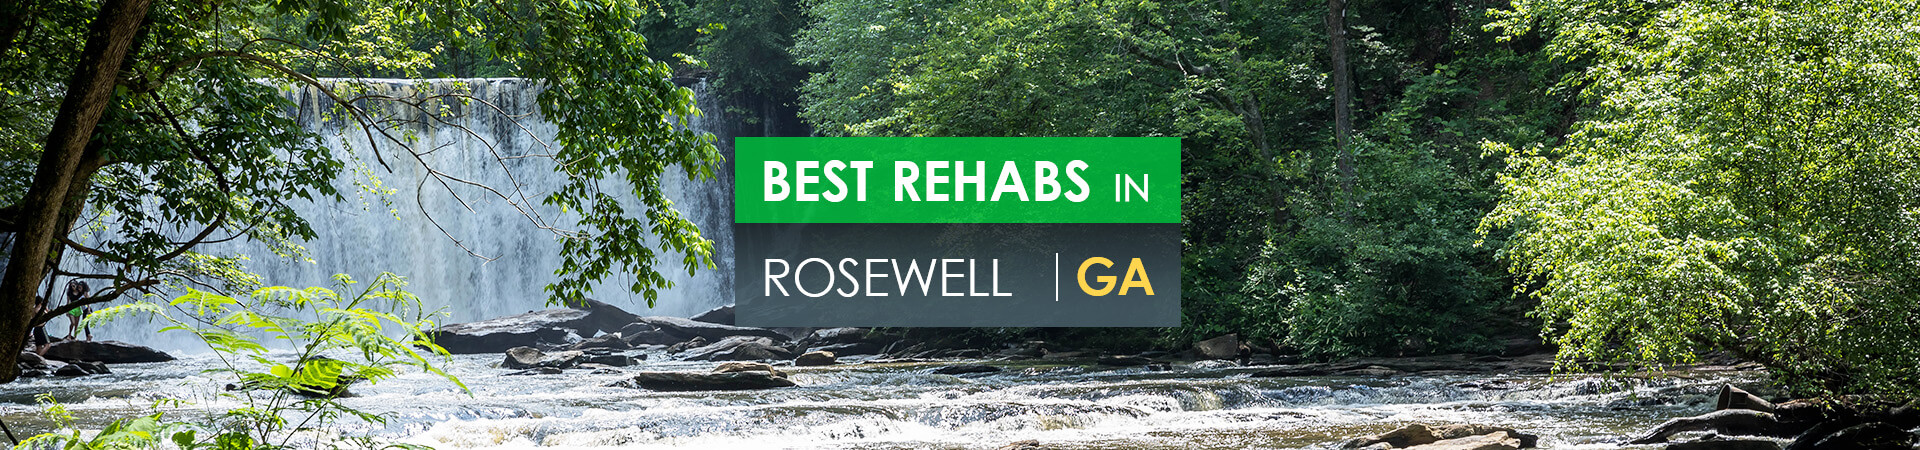 Best rehabs in Rosewell, GA